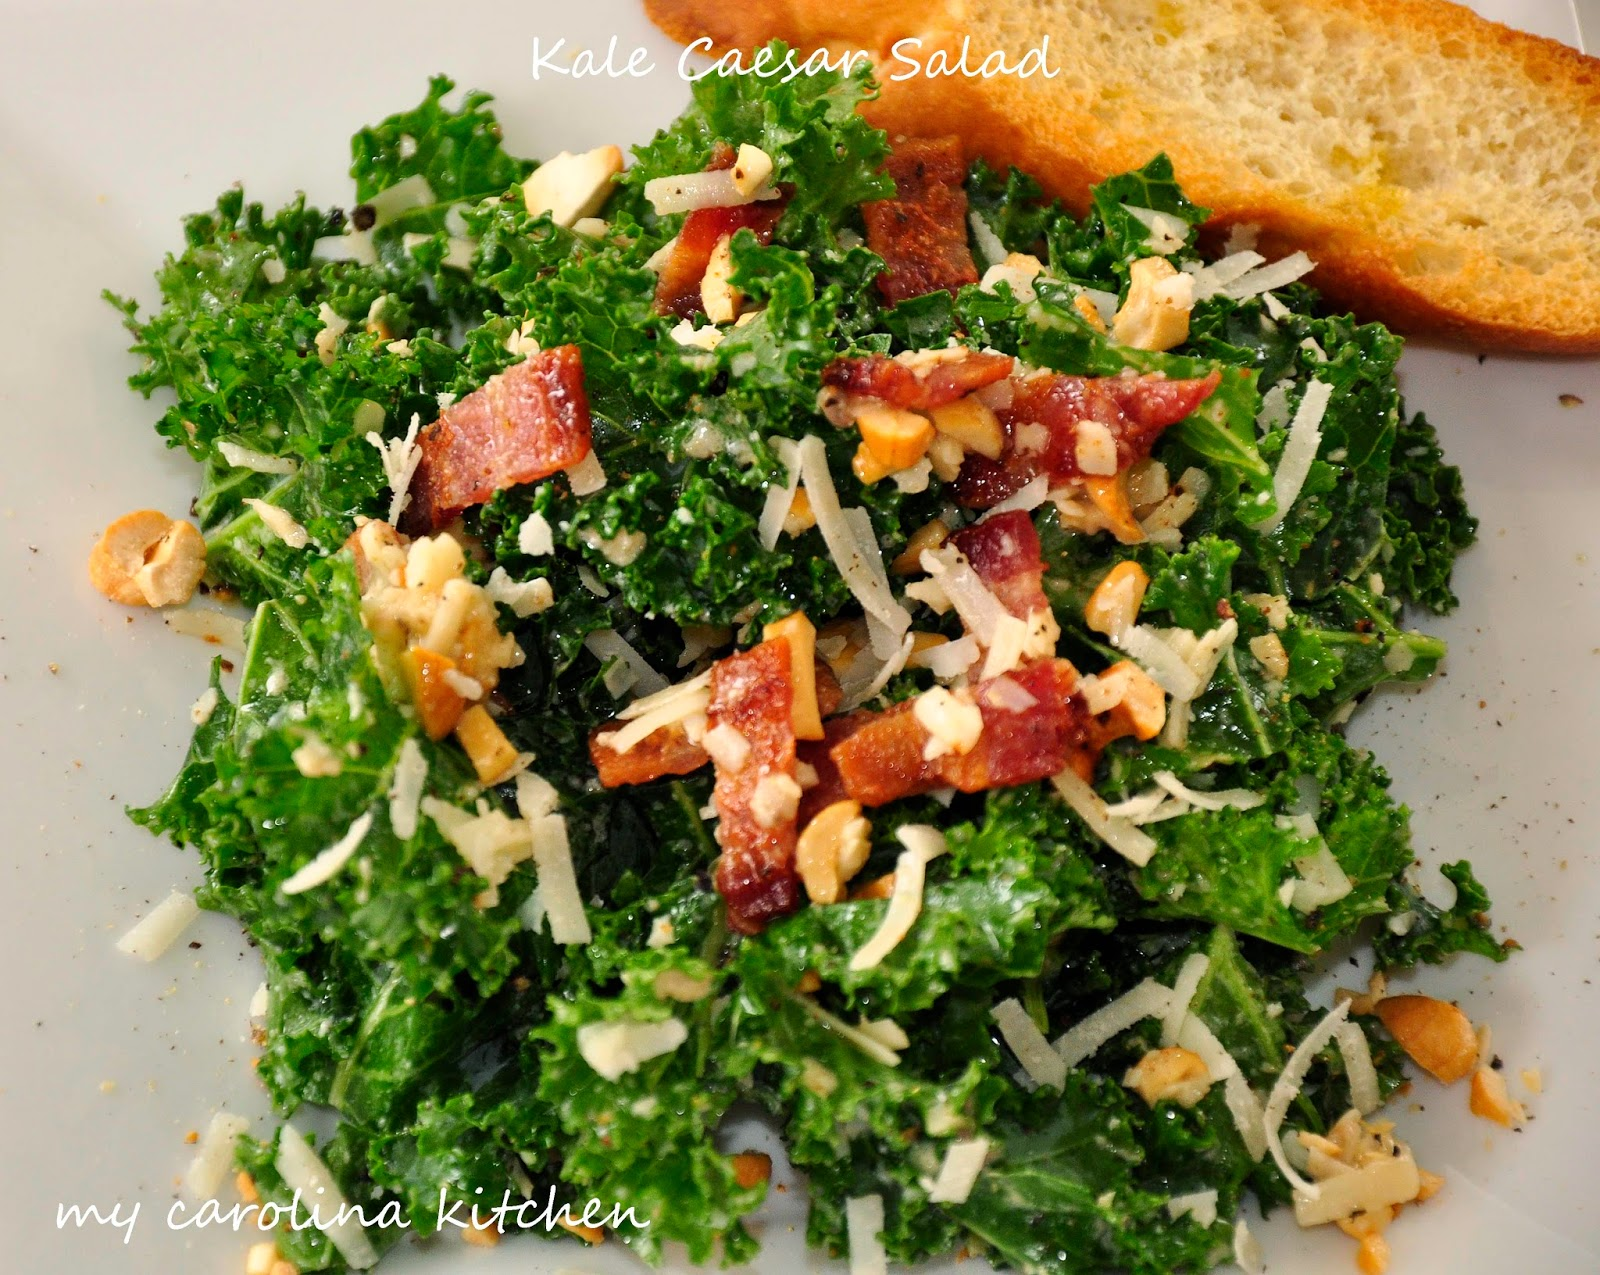 My Carolina Kitchen: Kale Caesar Salad with Smoky Bacon and Cashews ...